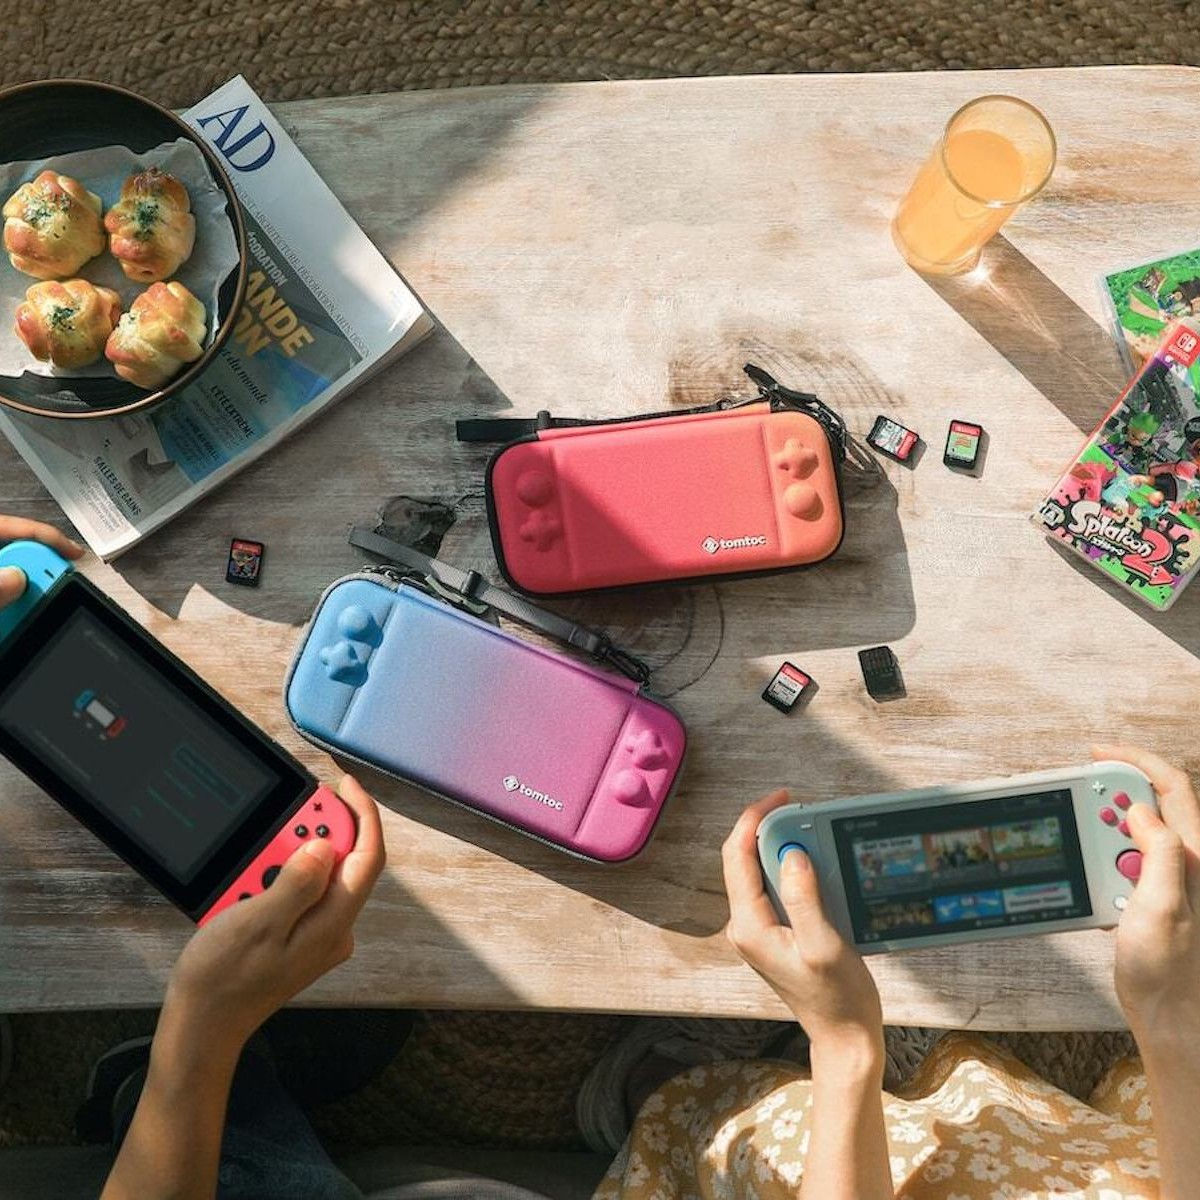 The best gaming gadgets and accessories for gamers of all levels thumbnail